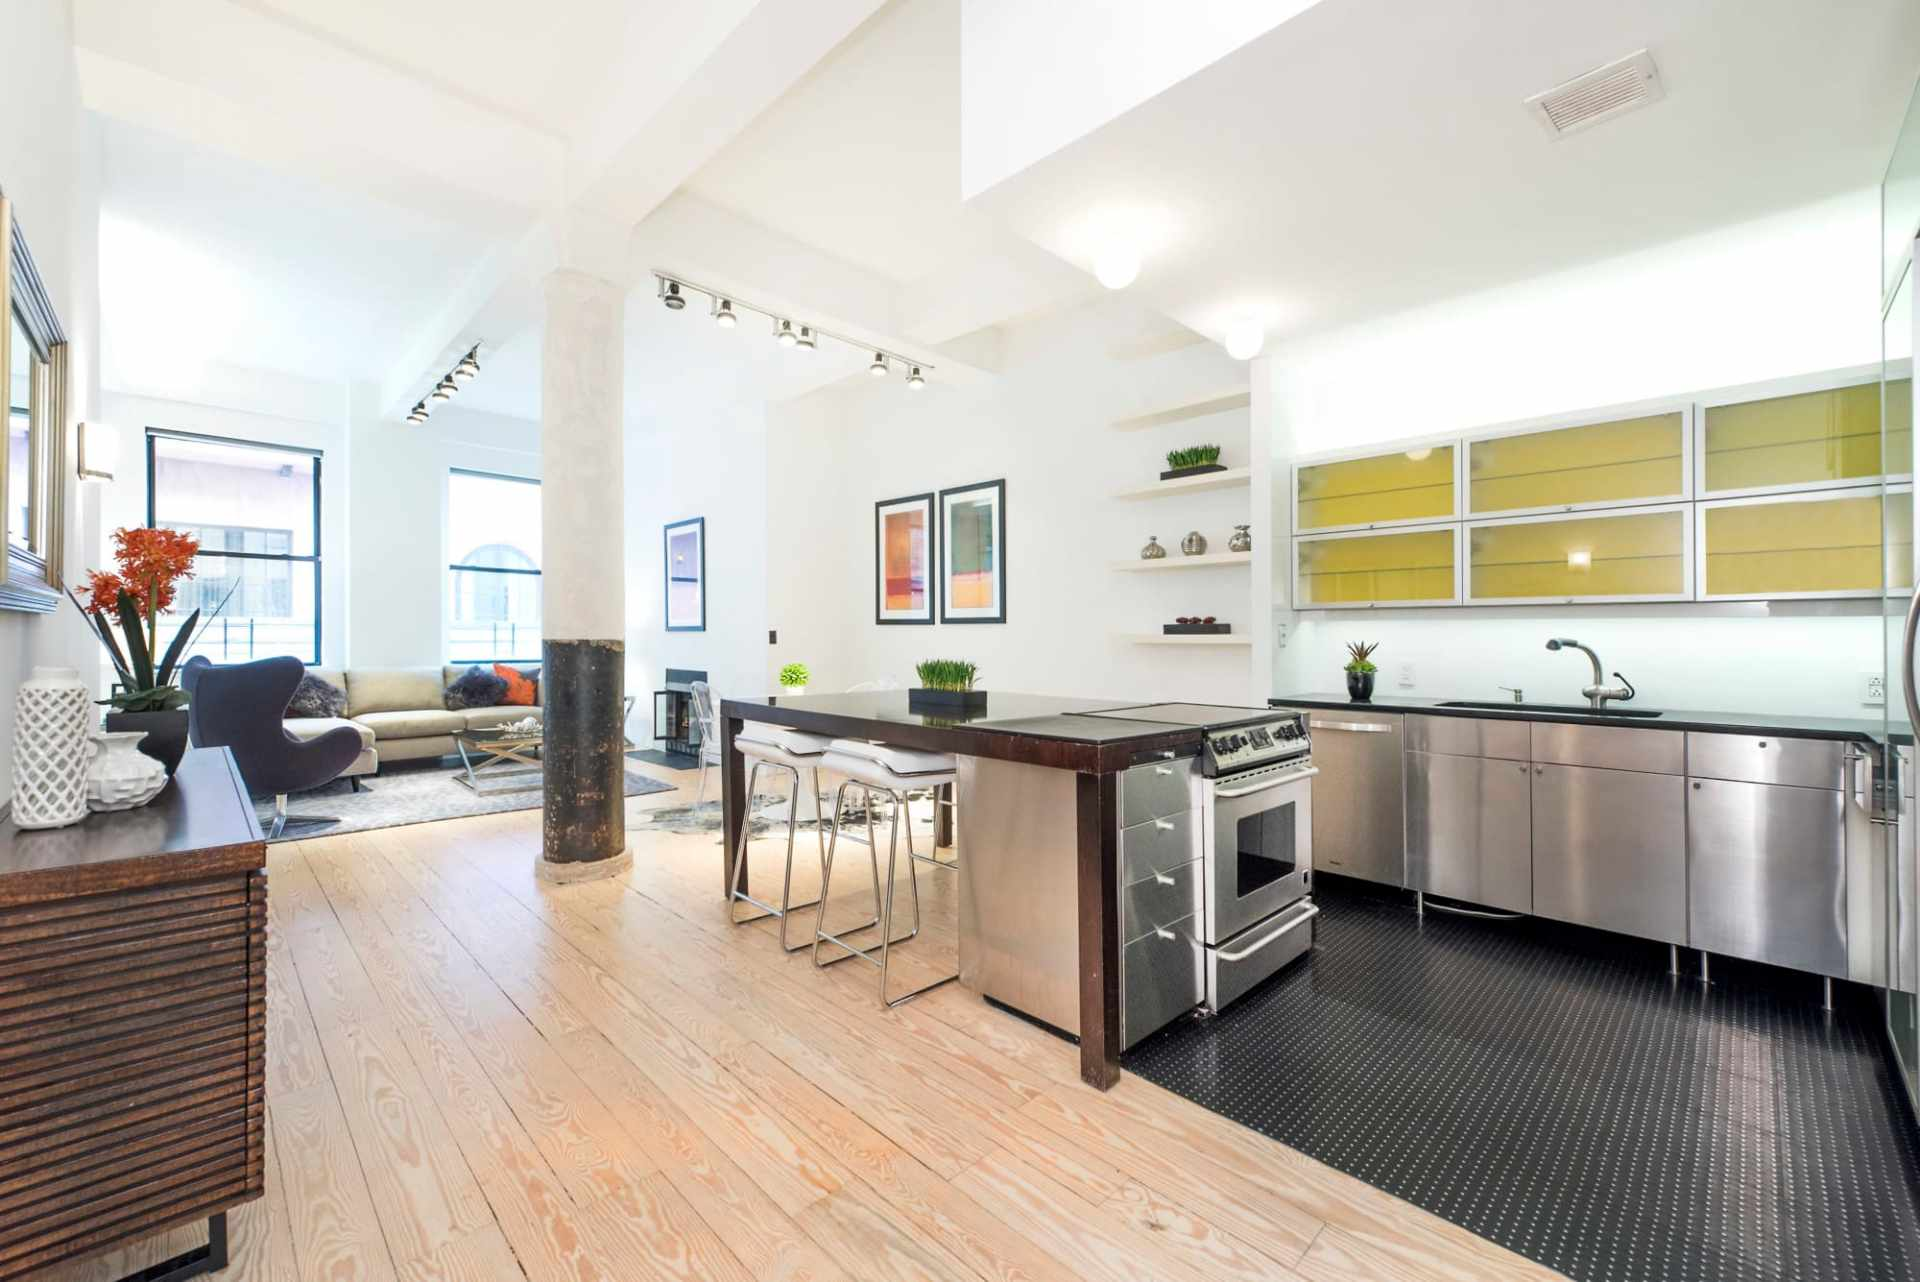 Making Your Home More Appealing to Buyers